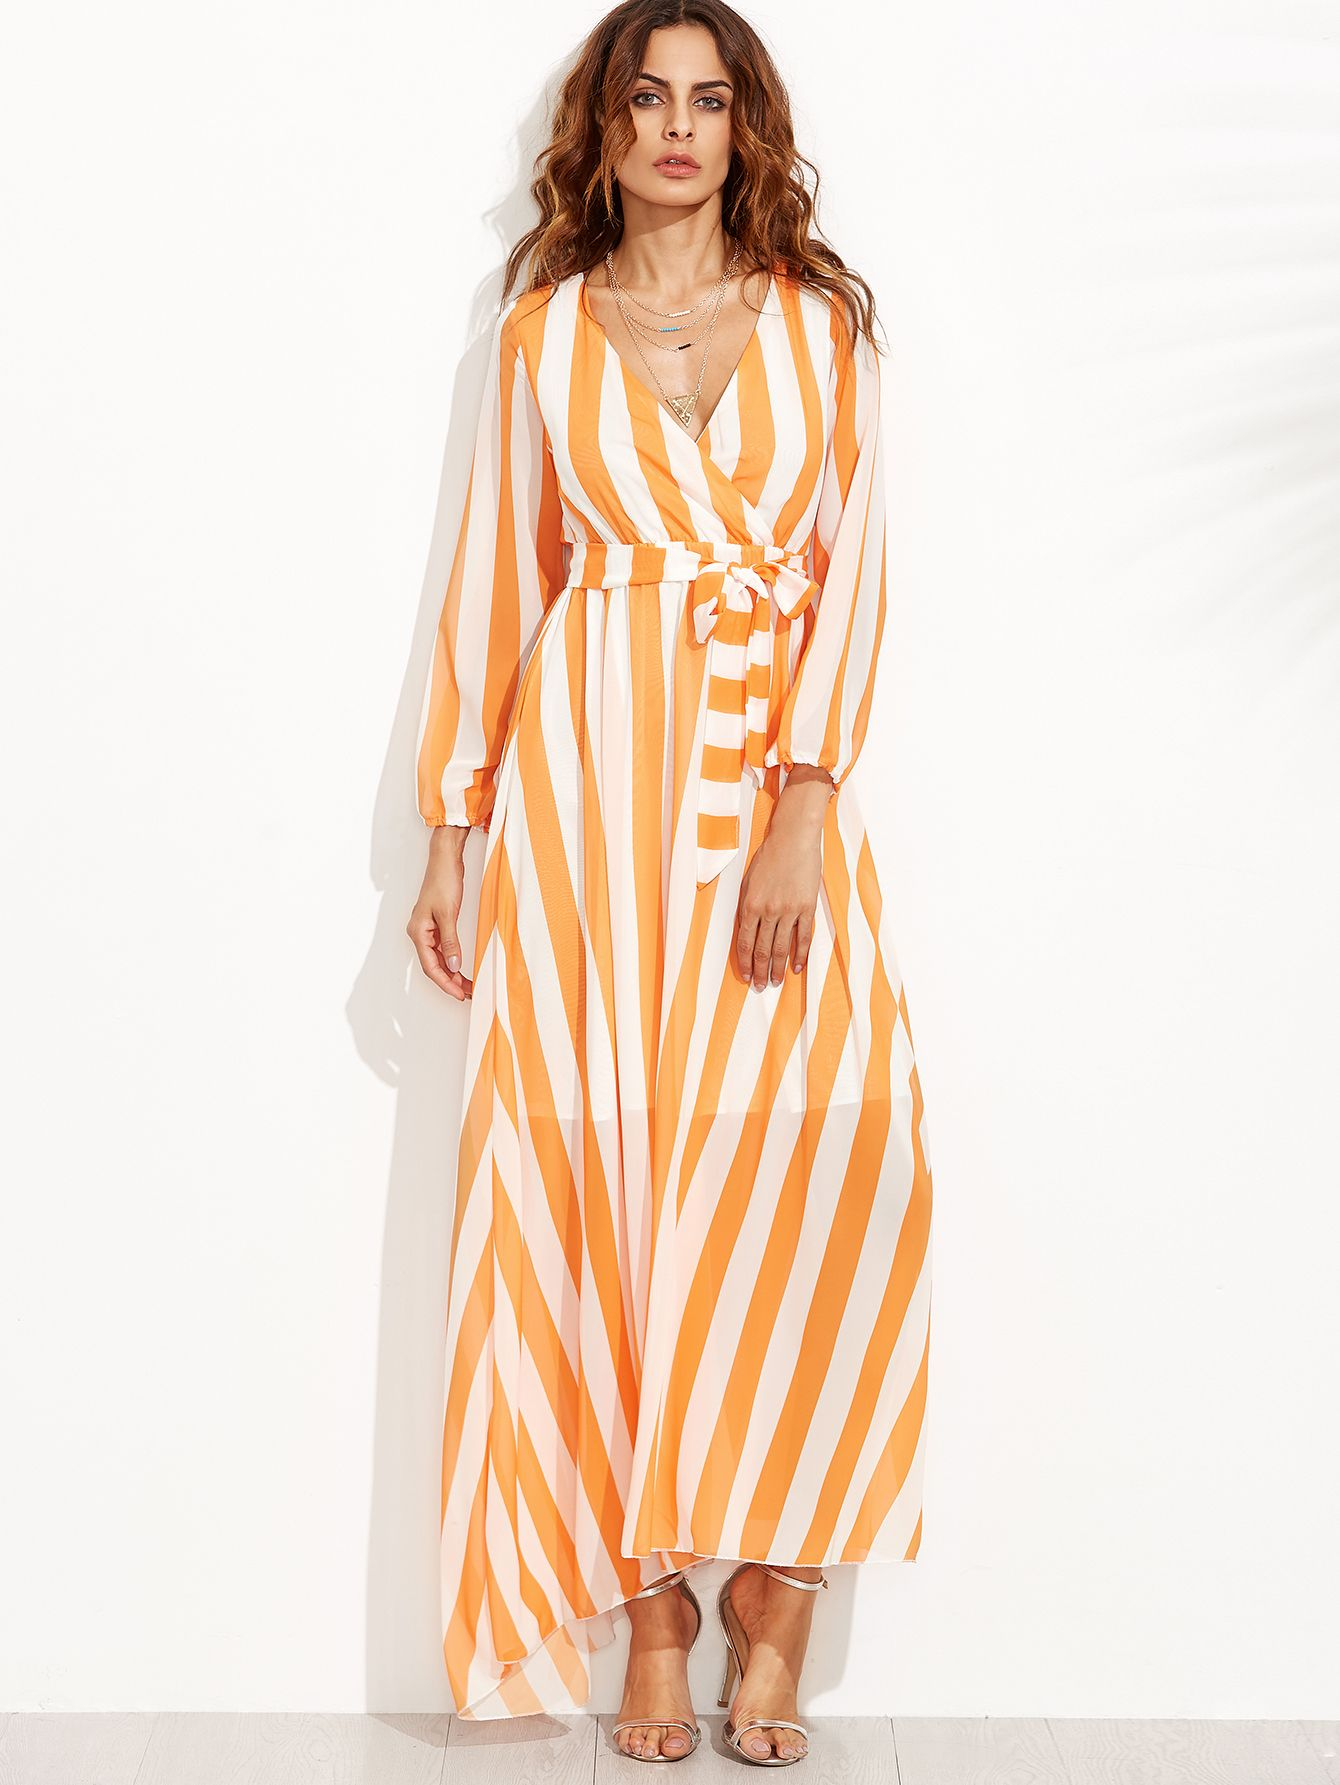 f8e140101fd5d Orange unconcerned Chiffon Deep V Neck lifelong hosepipe A Line Maxi Belted  Striped YES structure angular distance no pull time of year Wrap Dresses.